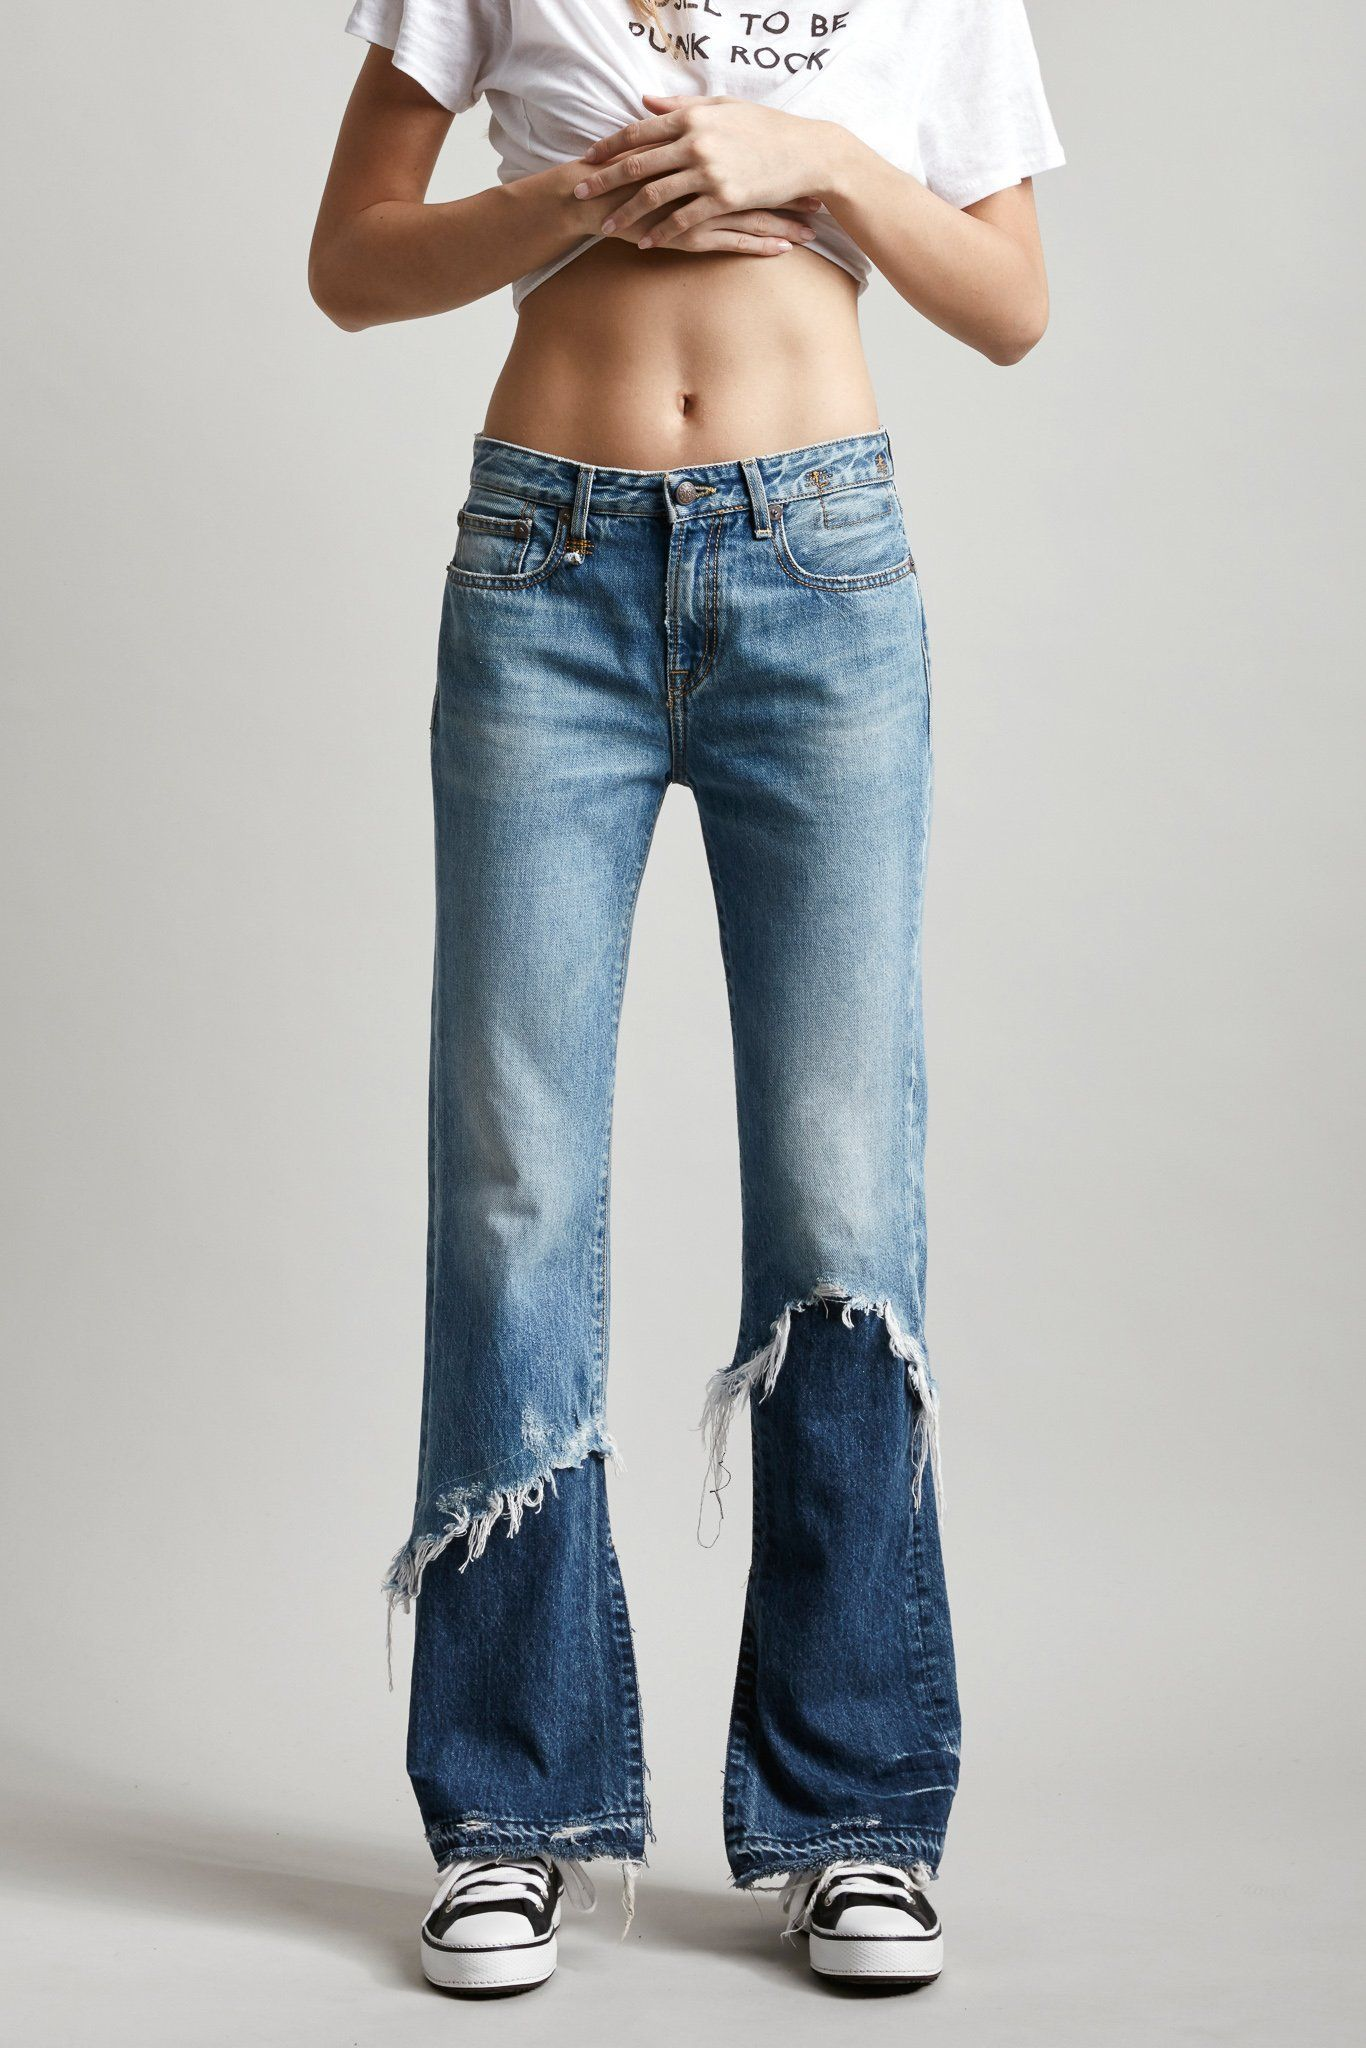 5c4d3a215a4 Vent Kick with Double Shredded Hems   fawn in 2019   Denim jeans ...